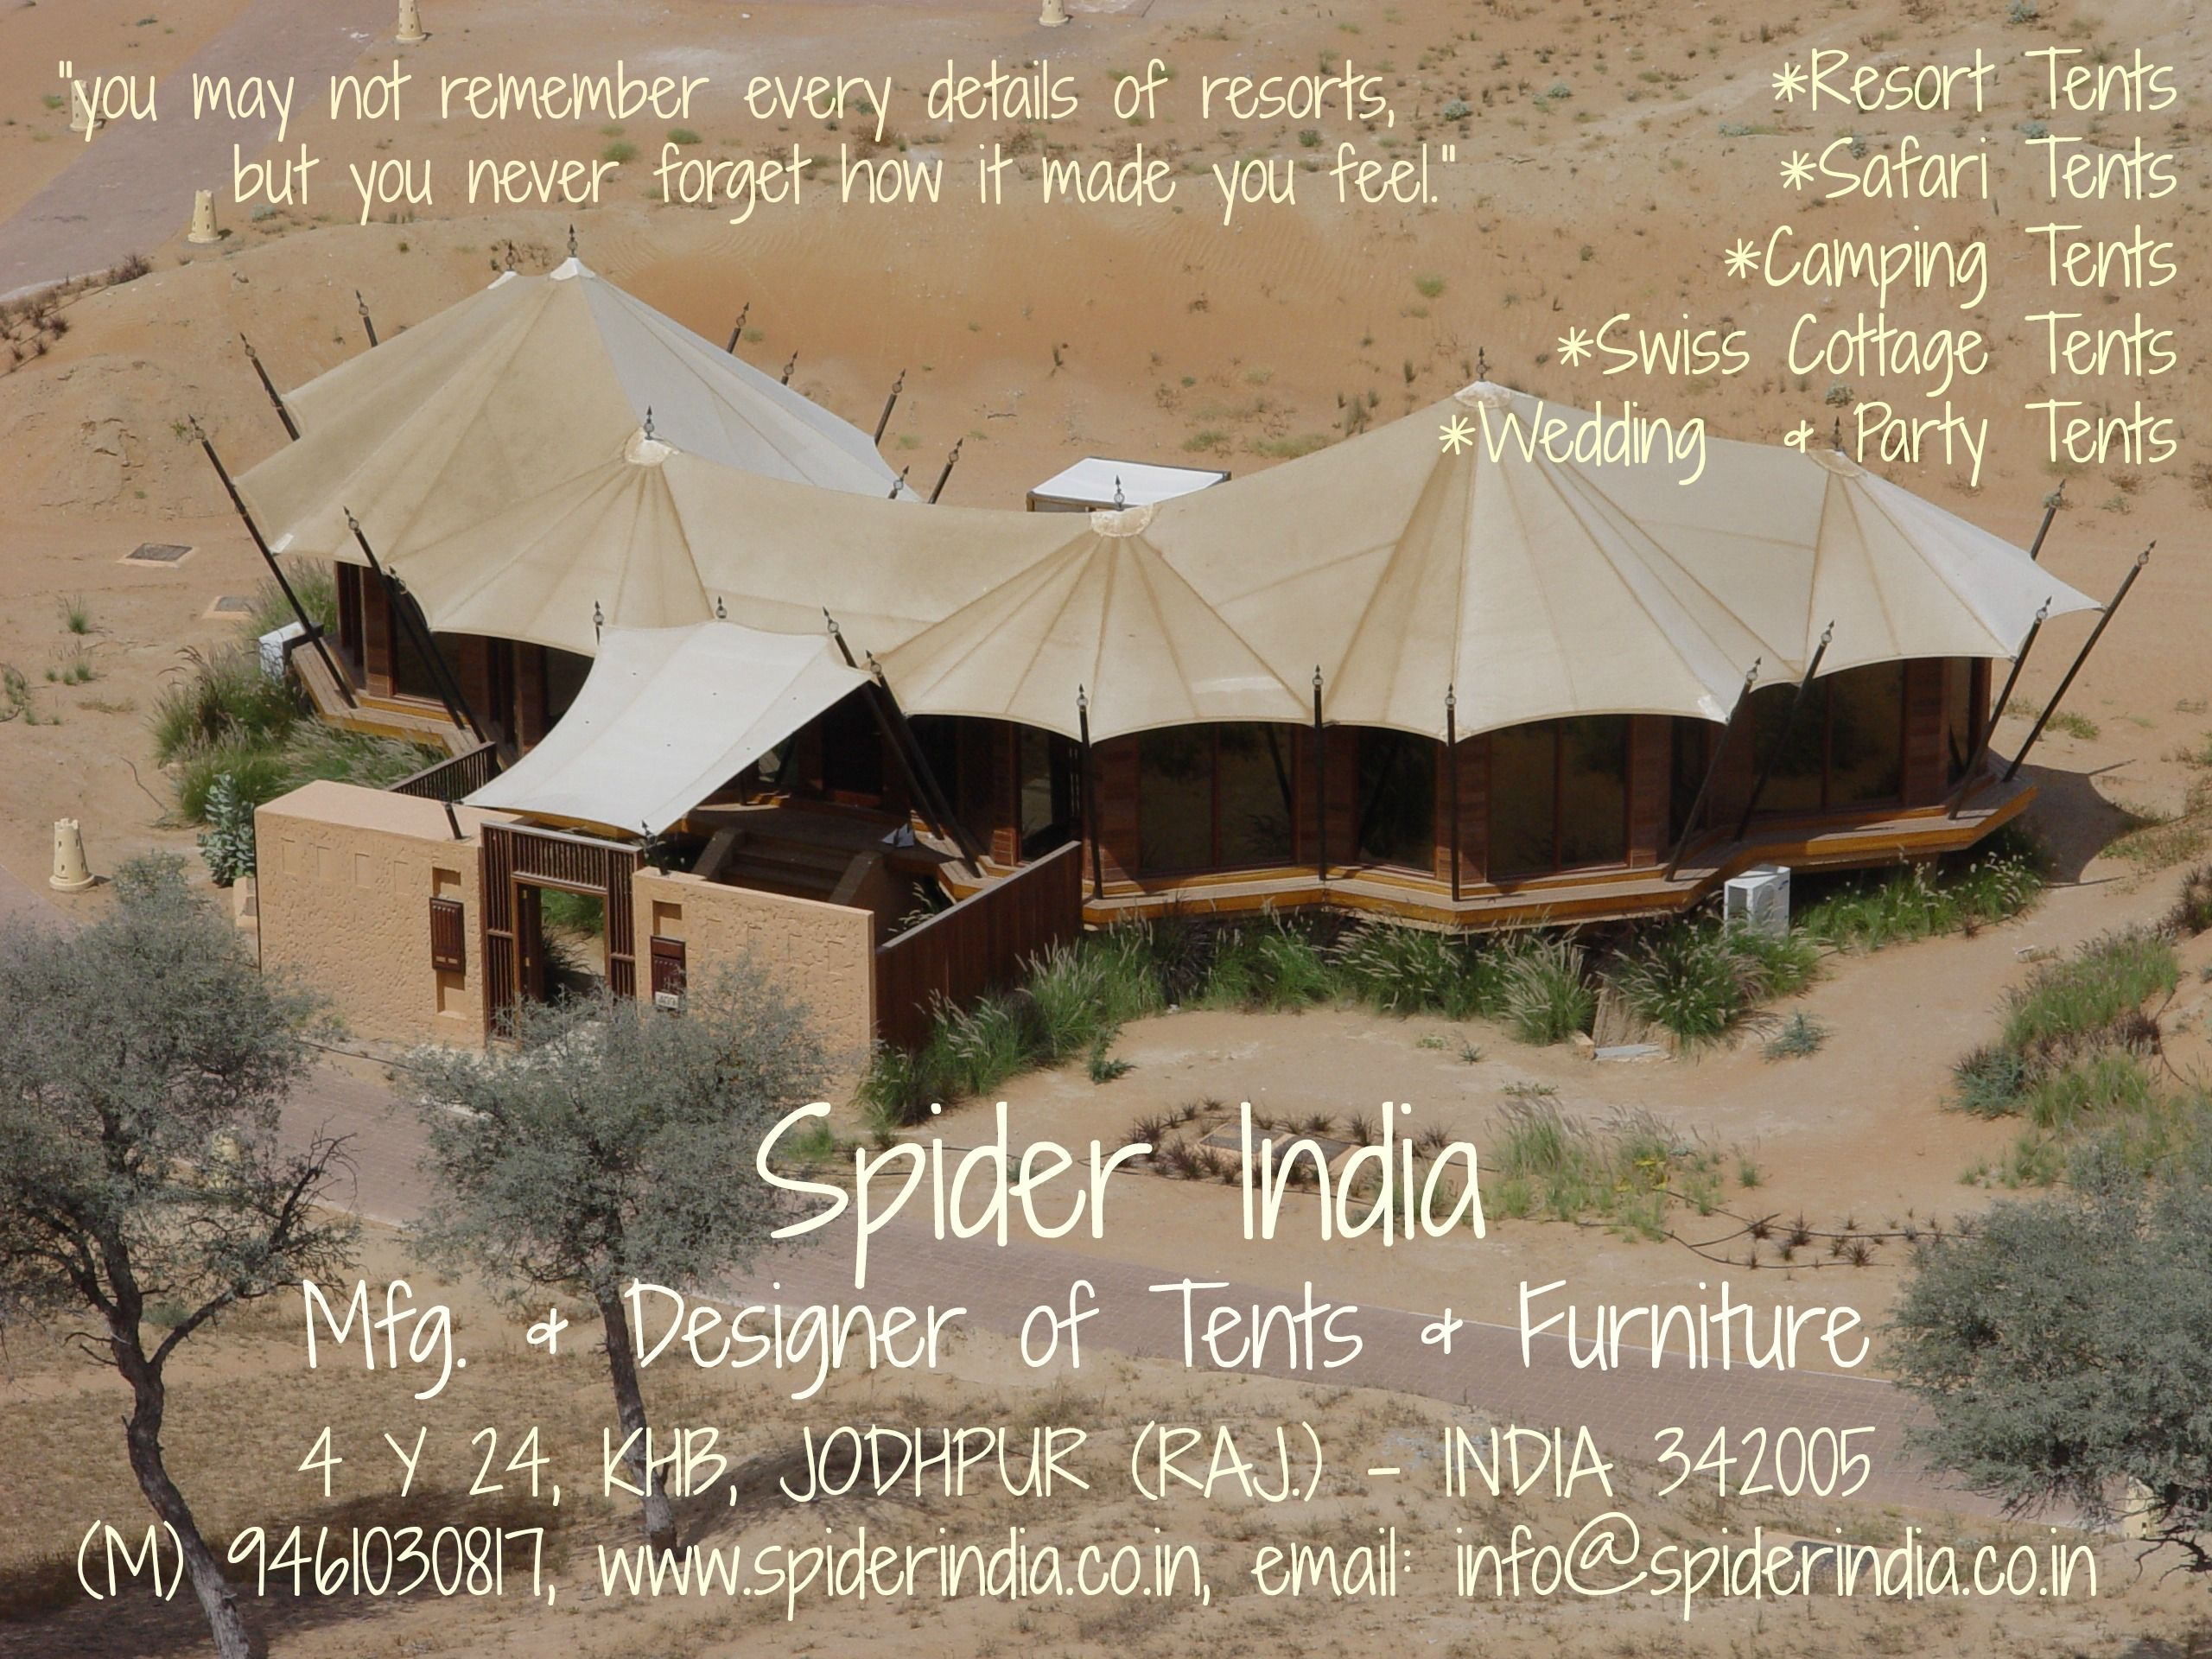 Manufacturer u0026 Exporters of Luxury c&ing tent in Jodhpur India. Spider India offering fine quality Luxury c&ing tent at Affordable Price. & Luxury camping tent Camping tent swiss cottage tent resort tent ...